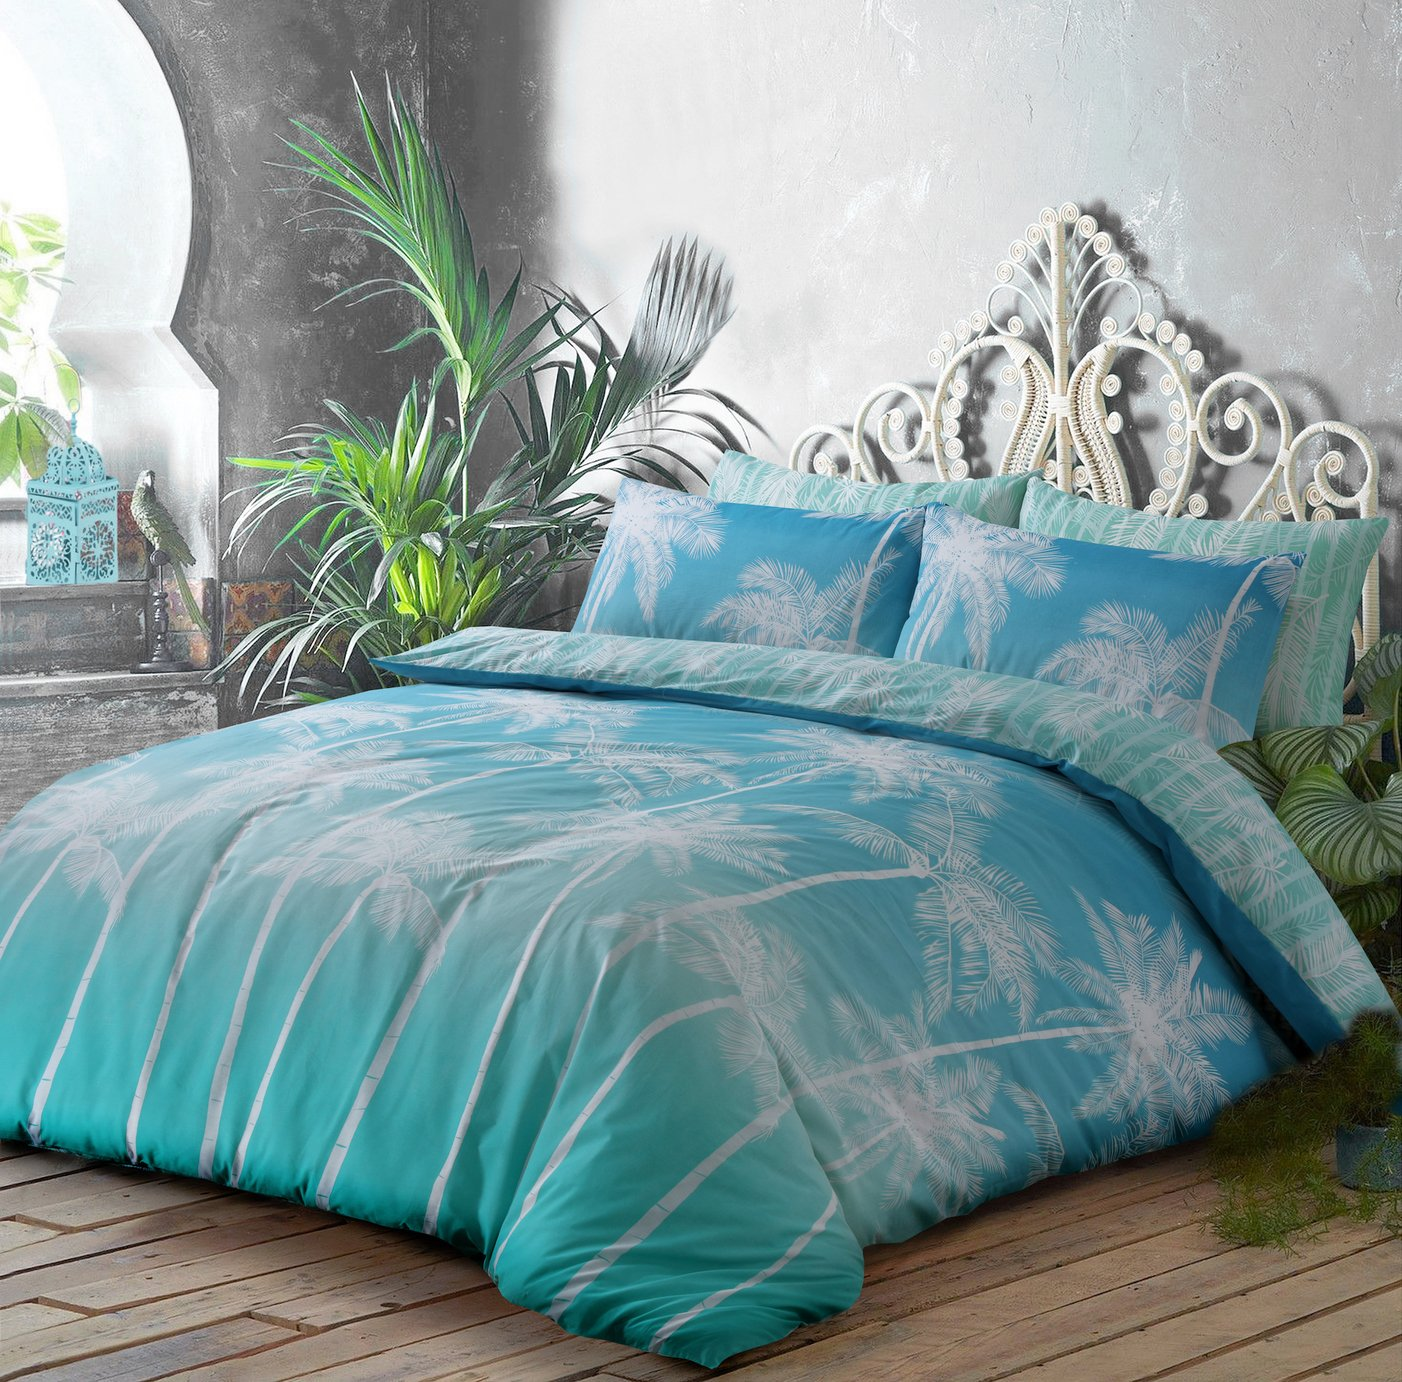 Argos Home Teal Ombre Palm Bedding Set - Kingsize